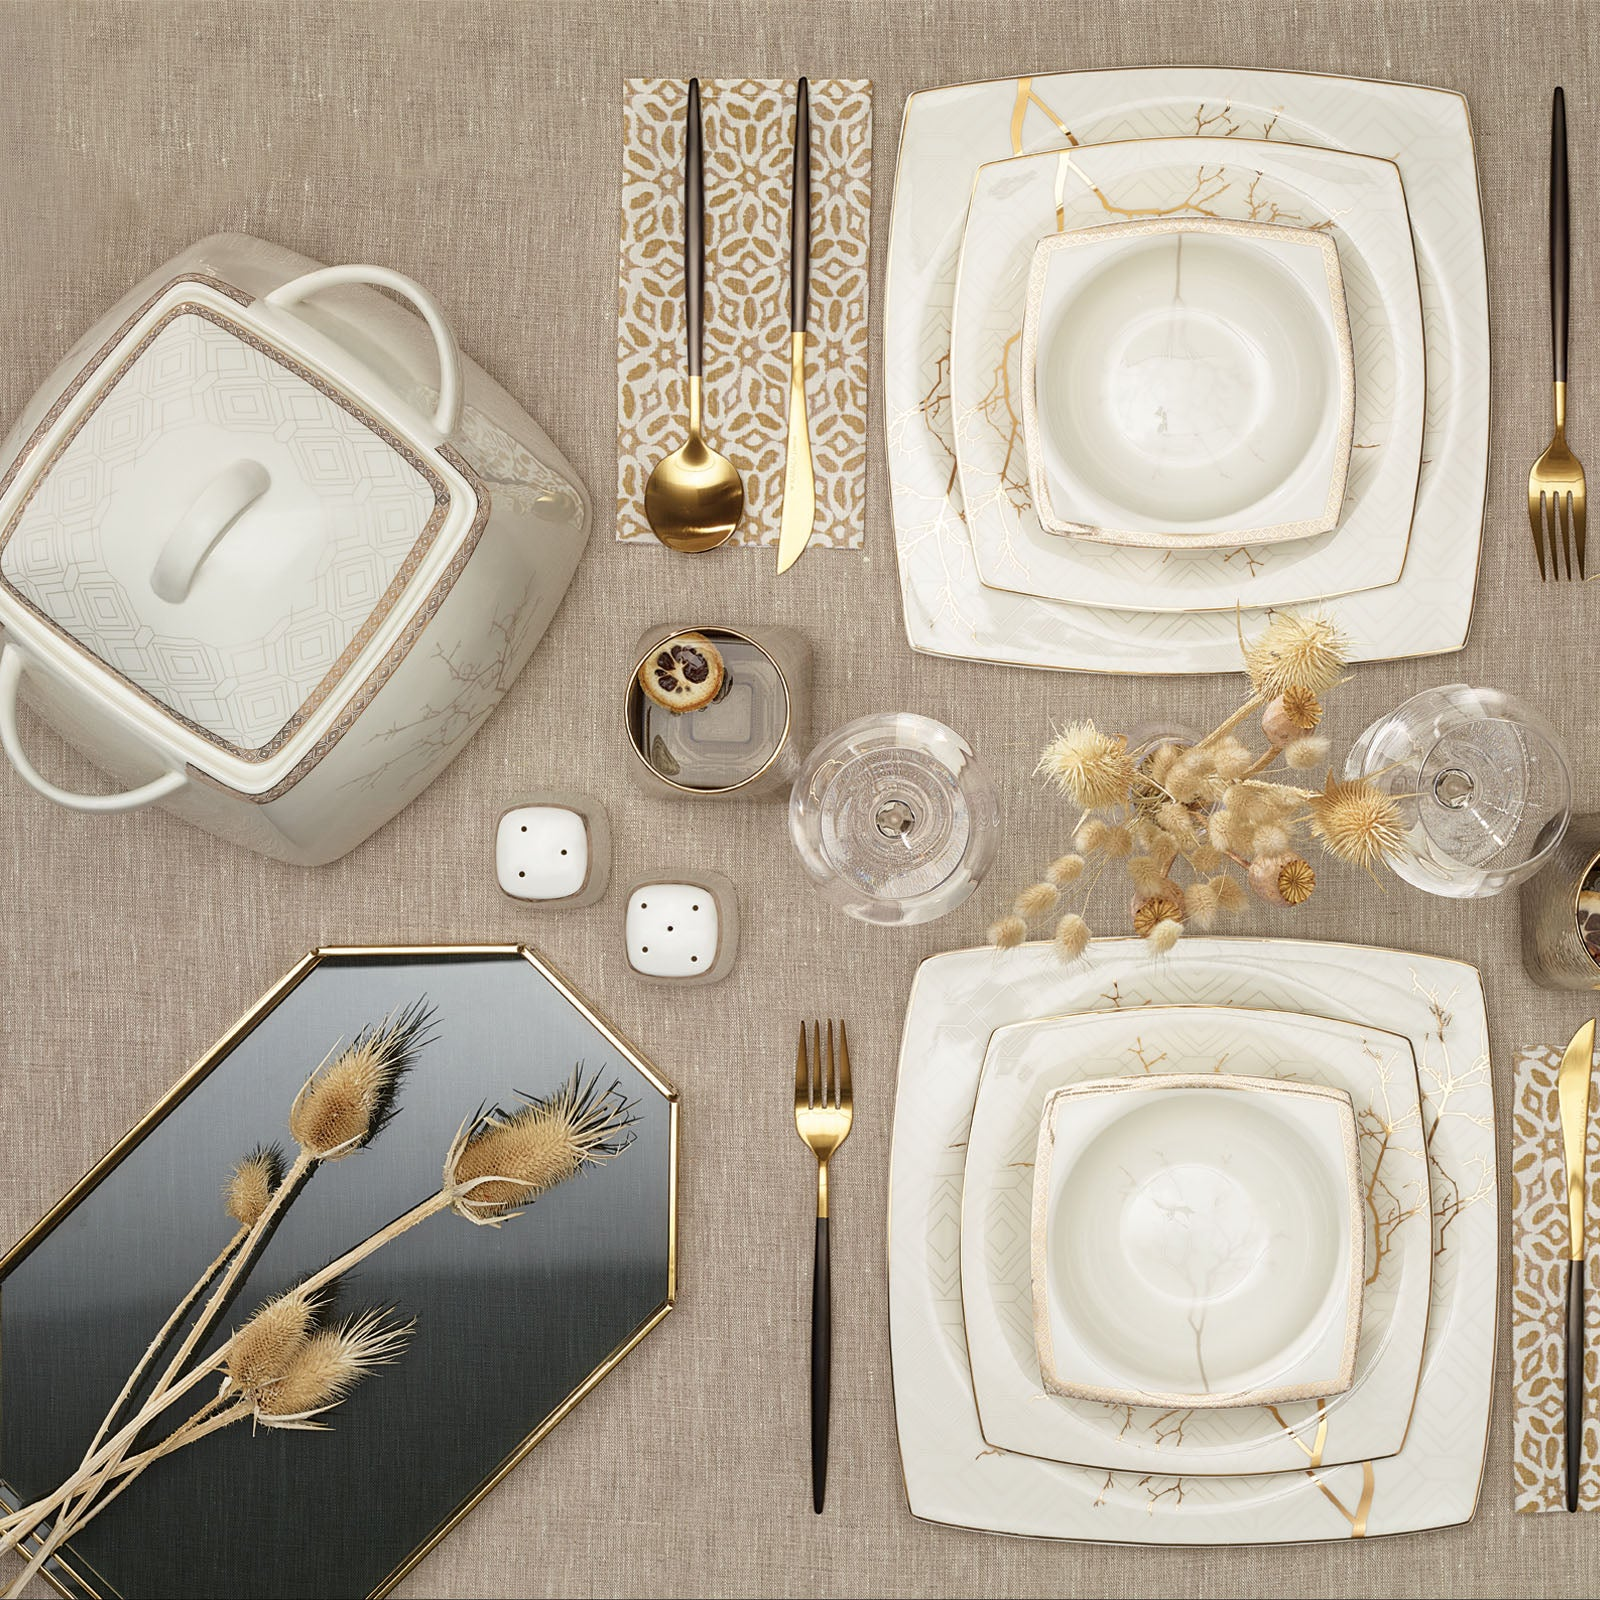 Karaca Autumn Fine Cream 60 Pieces Dinner Set for 12 People Square 153.03.07.6209 - ebarza